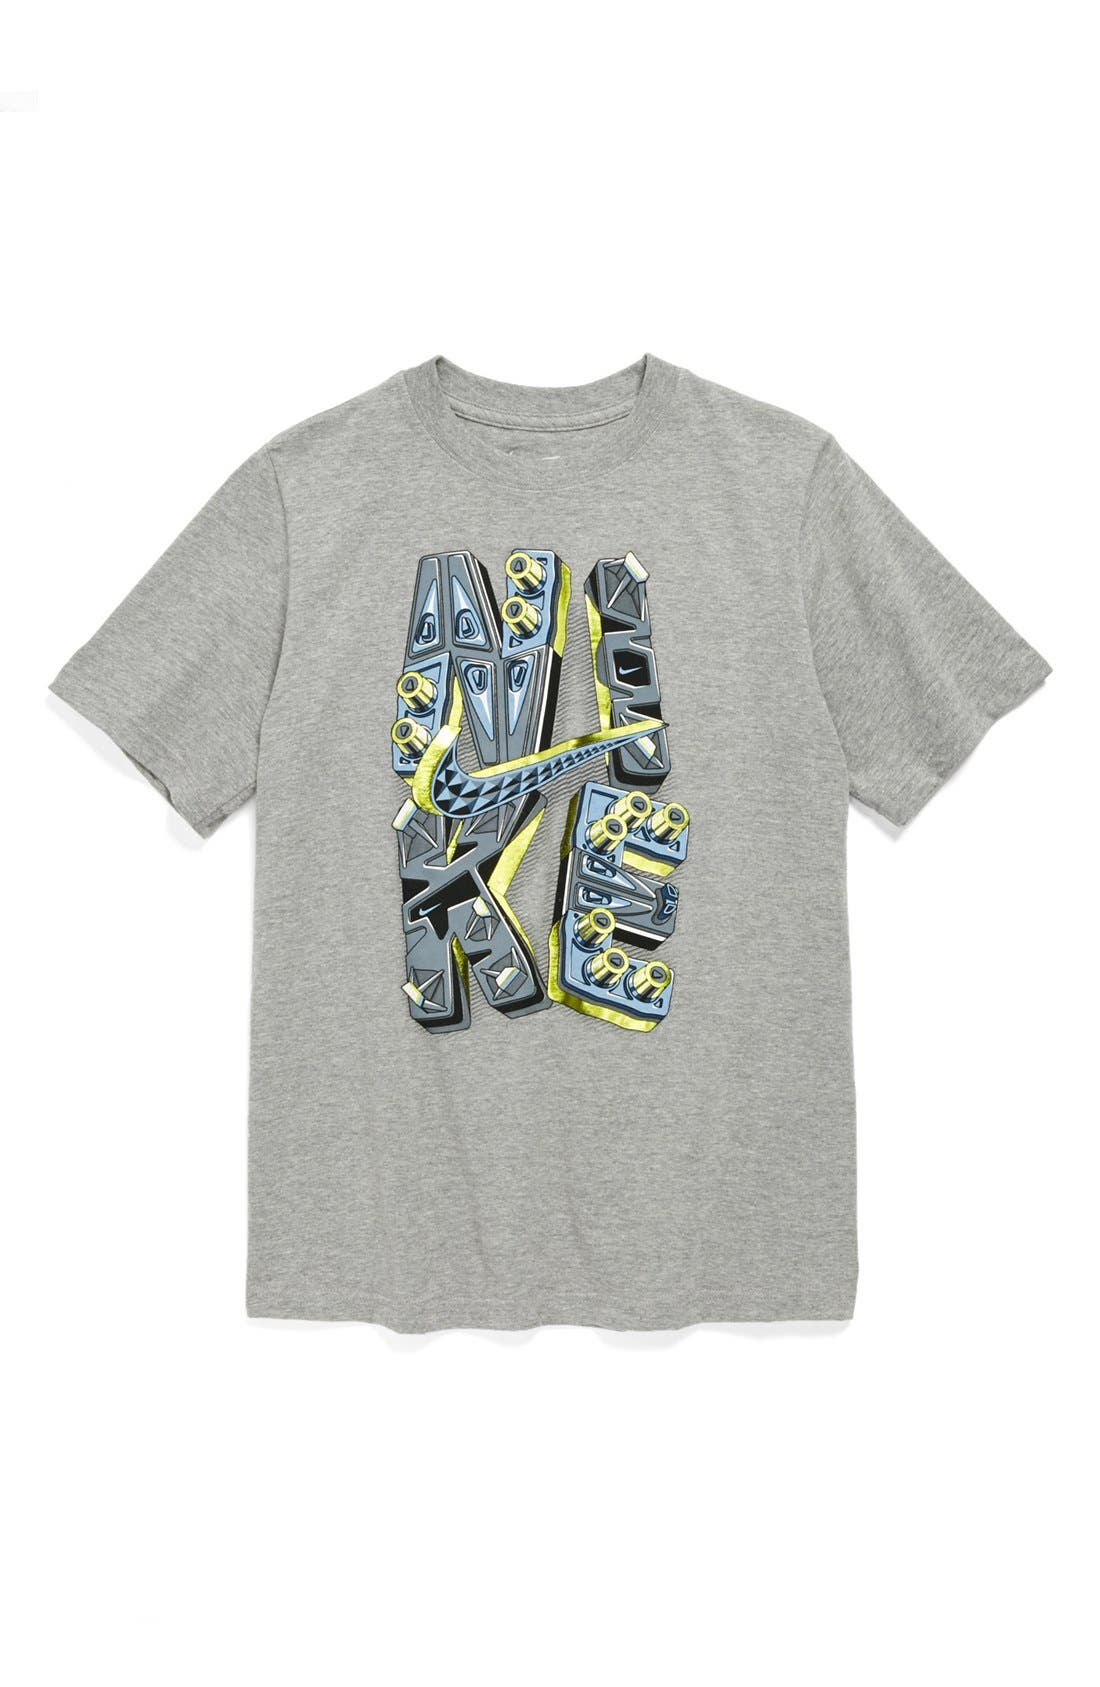 Main Image - Nike 'Soles' Cotton Blend T-Shirt (Big Boys)